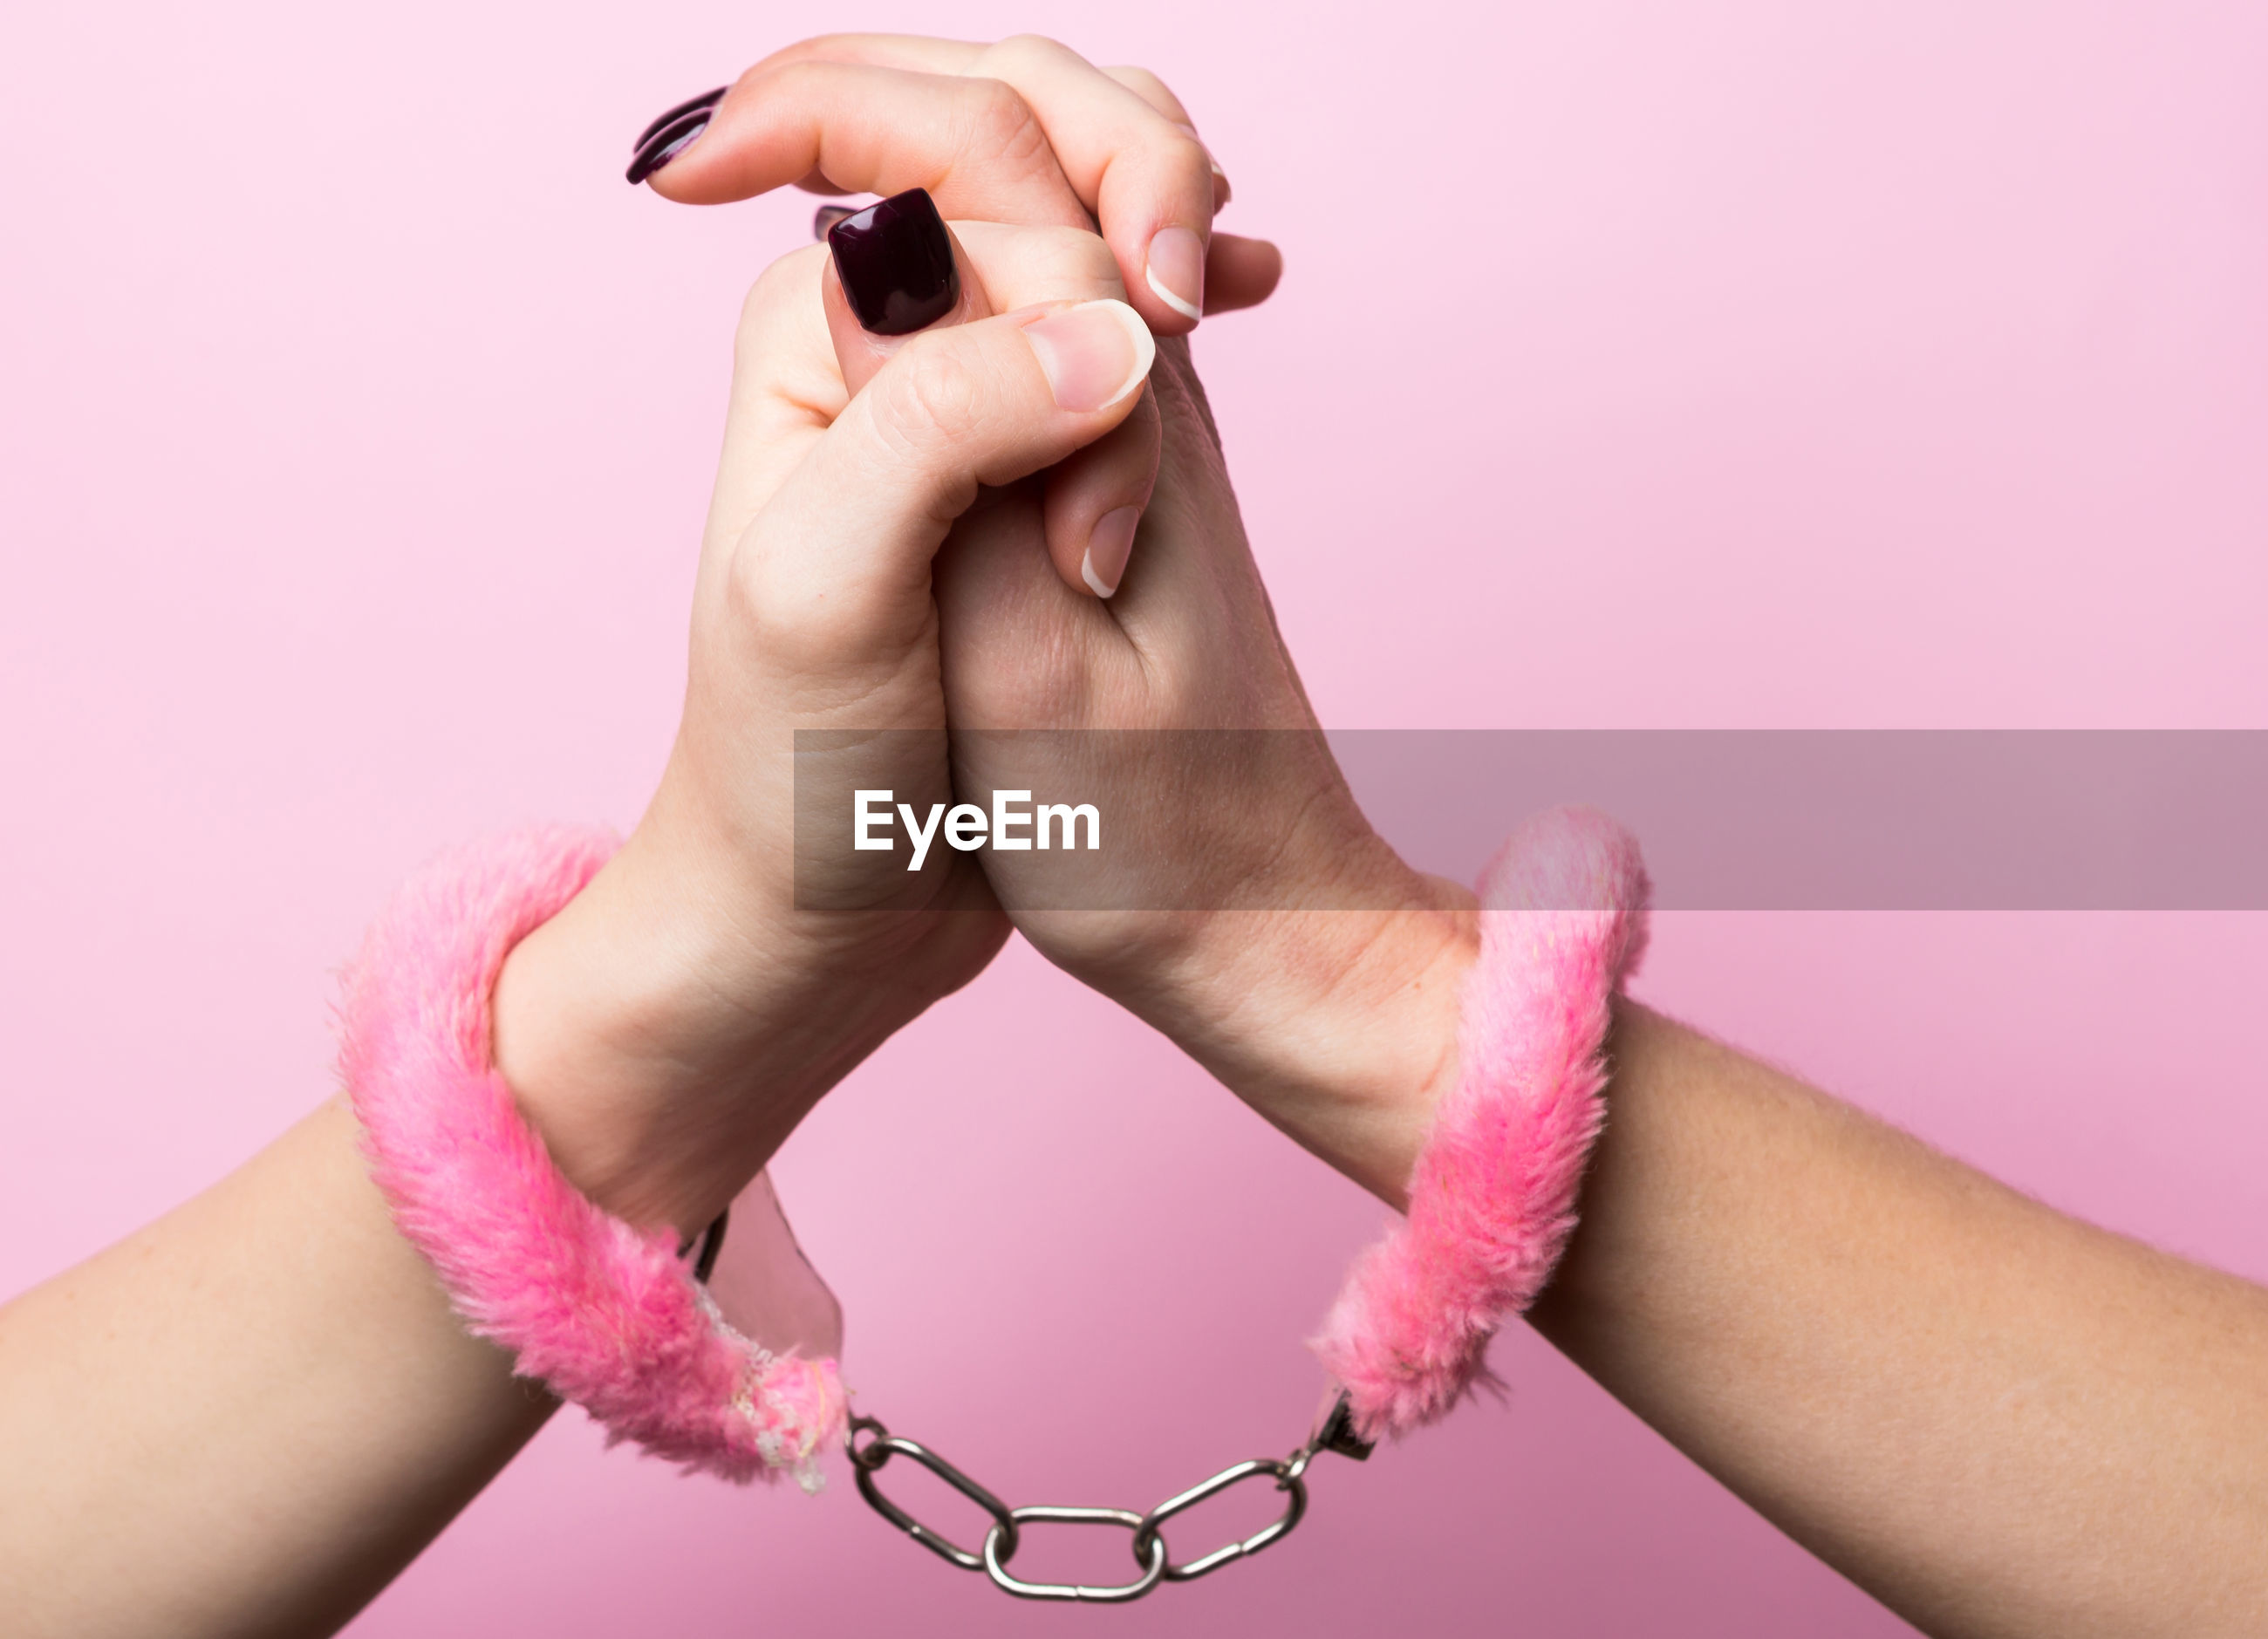 Cropped hands of woman wearing handcuffs against wall